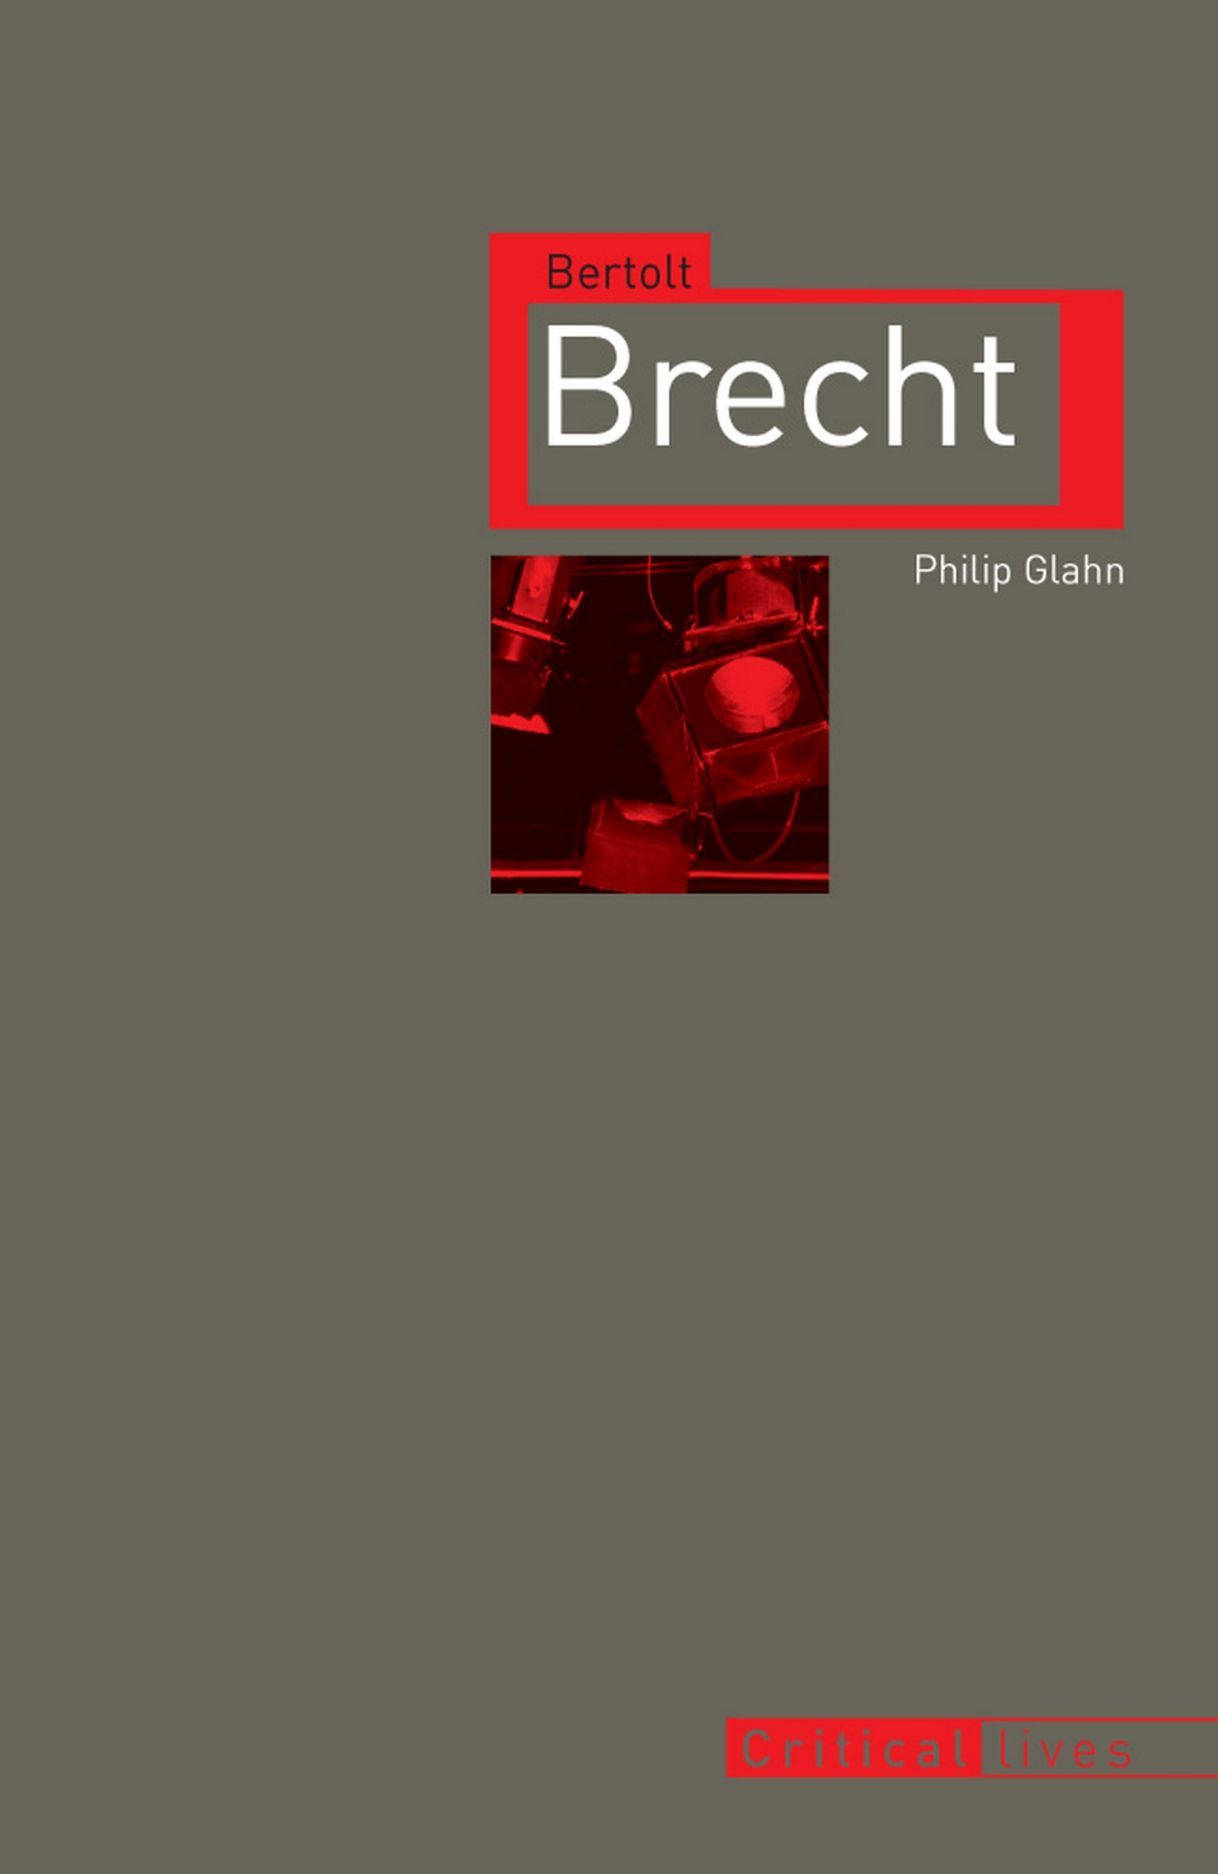 bertolt brecht his alienated world essay Essays and criticism on bertolt brecht's the threepenny opera - critical evaluation the discontent and disorientation that followed world war i his first.